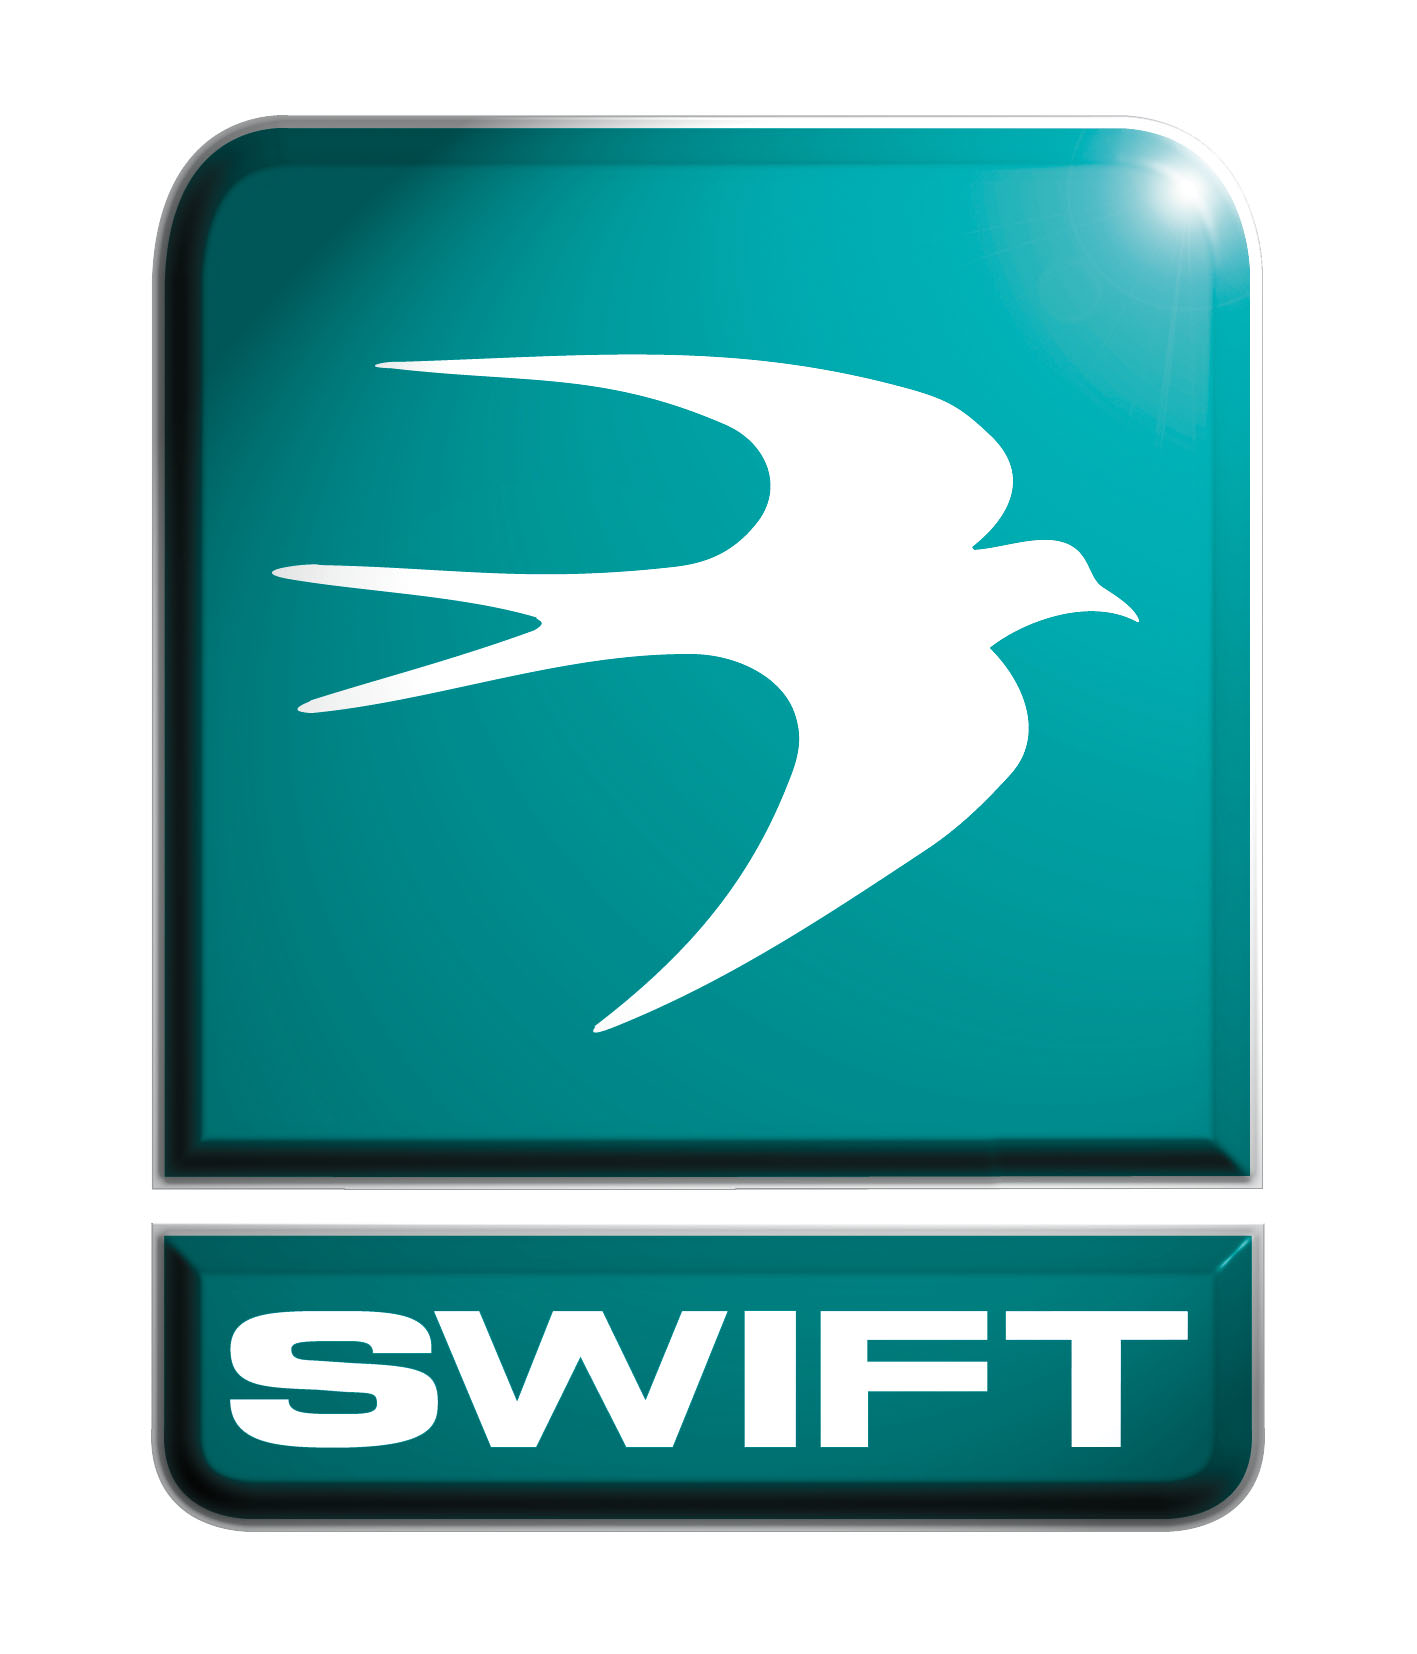 Swift Caravan Group